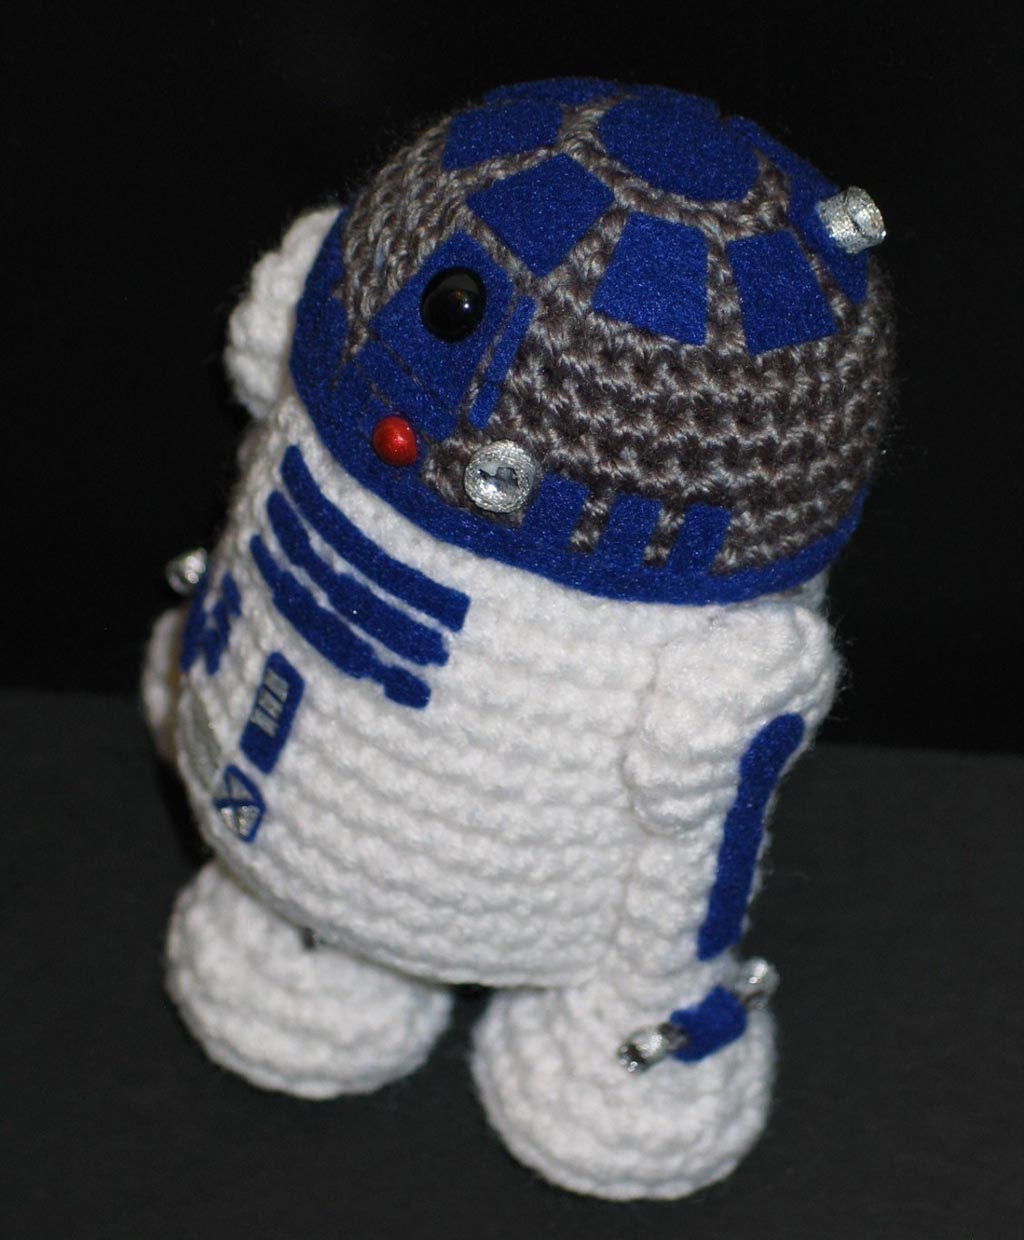 Make Your Own Star Wars R2-D2 Amigurumi Gadgetsin